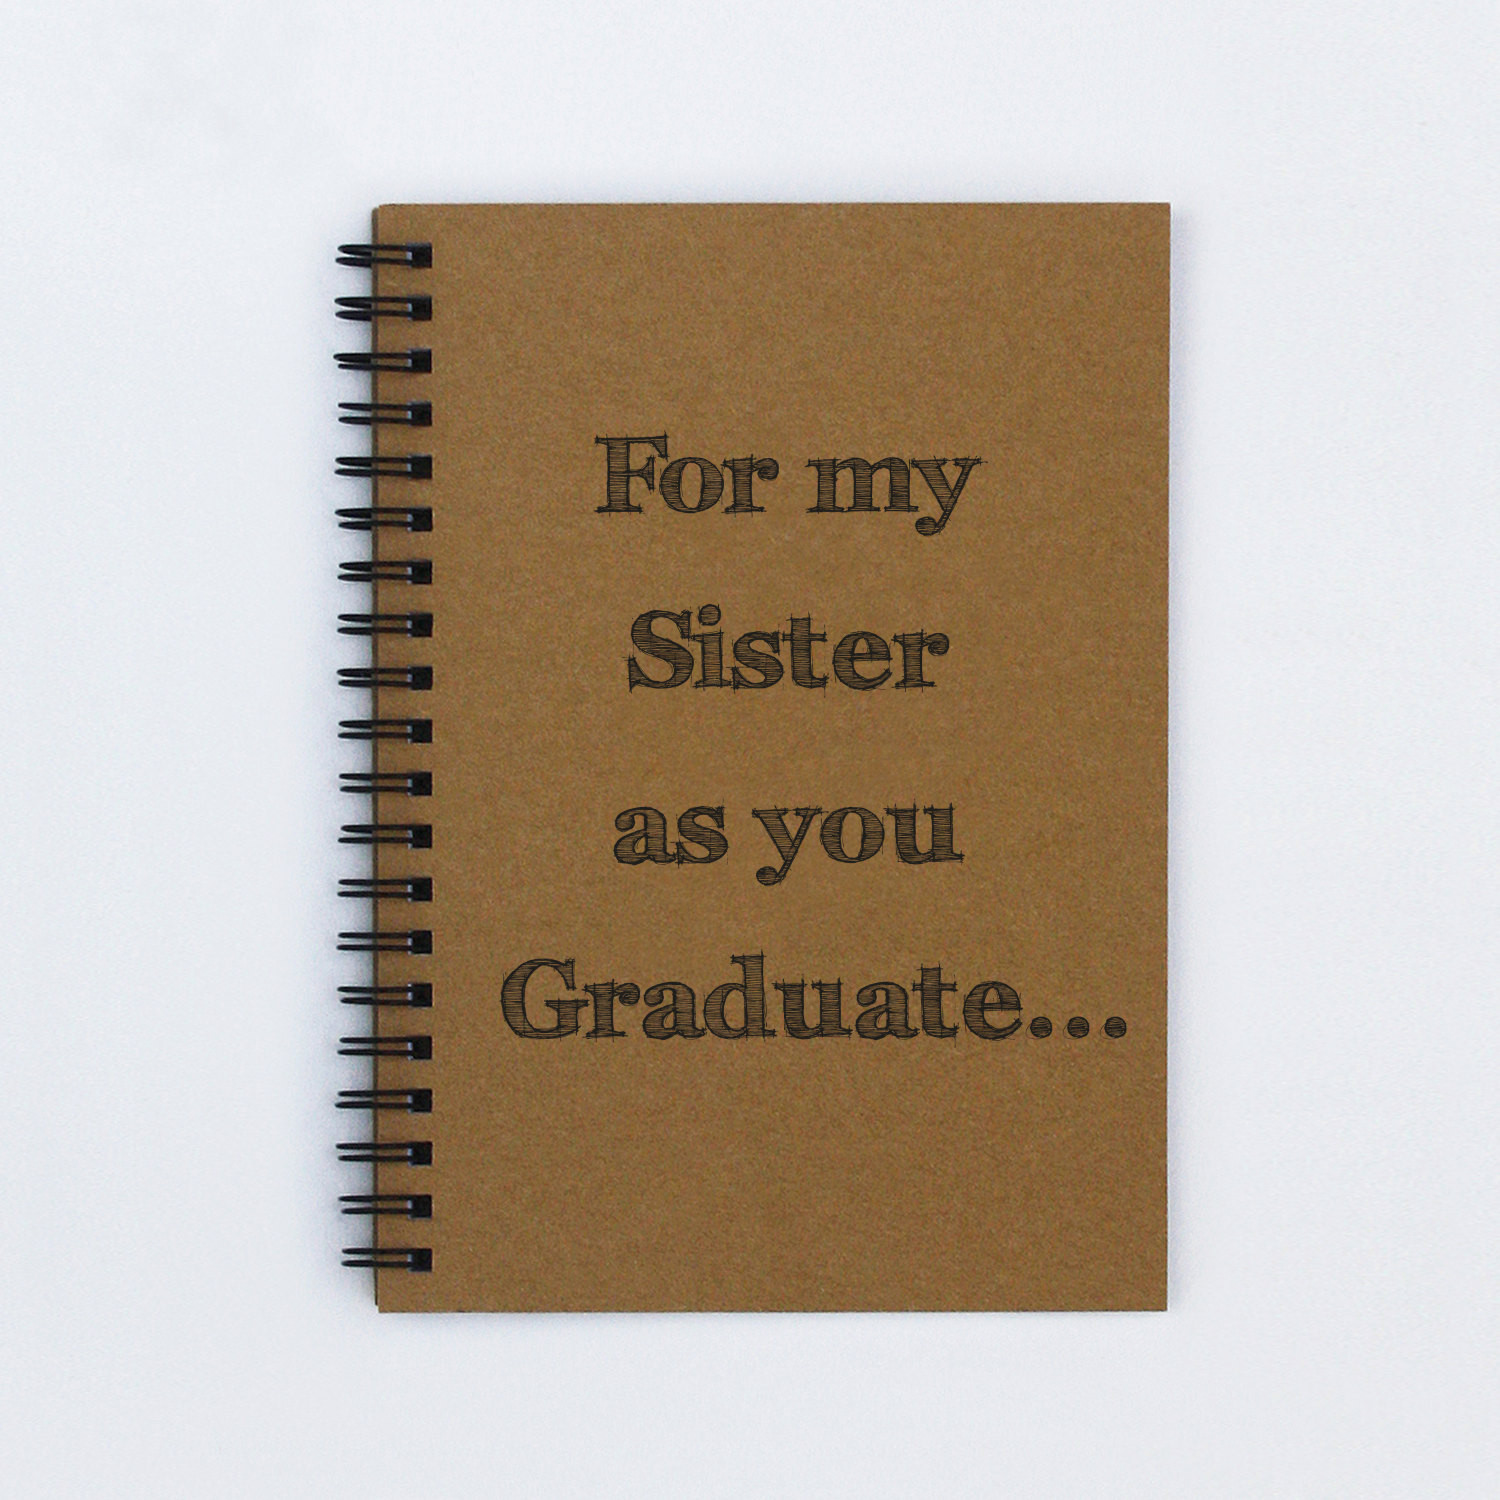 Graduation Gift Ideas For Sister  Graduation t for sister For my Sister by